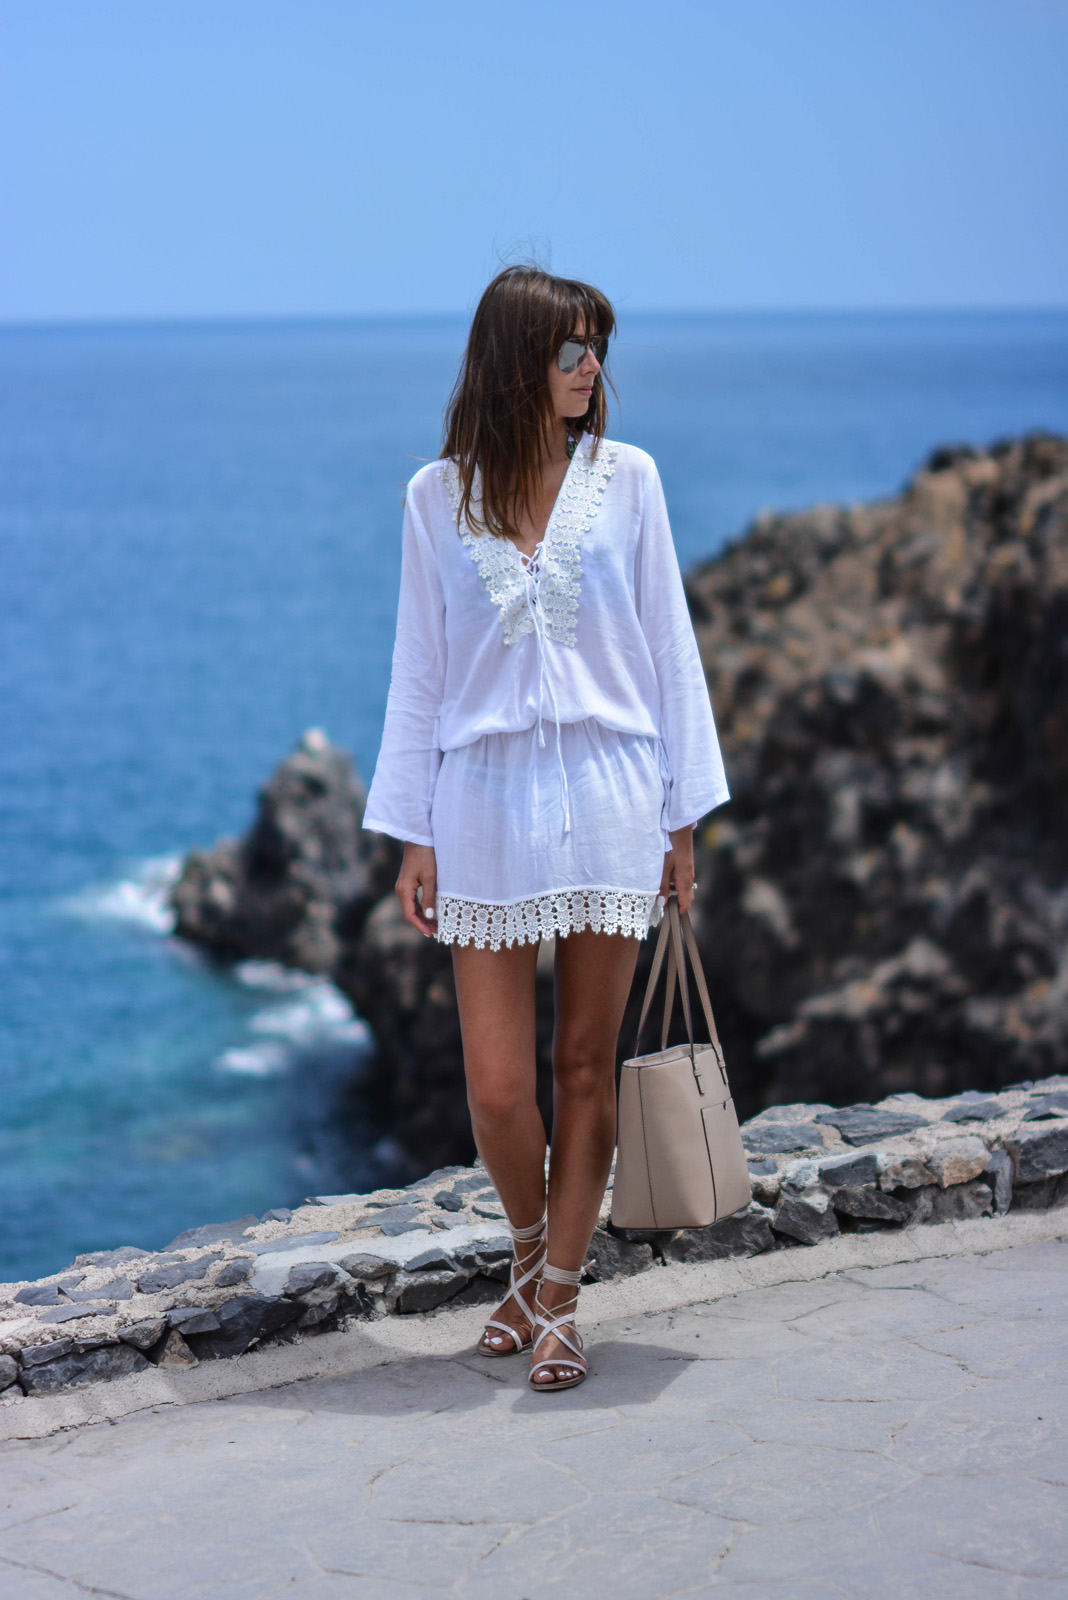 EJSTYLE - Emma Hill wears Cool Change Chloe Romance white tunic from Beach Cafe UK, Mango tie gladiator sandals, Mango saffiano tote shopper bag, summer style, vacation style